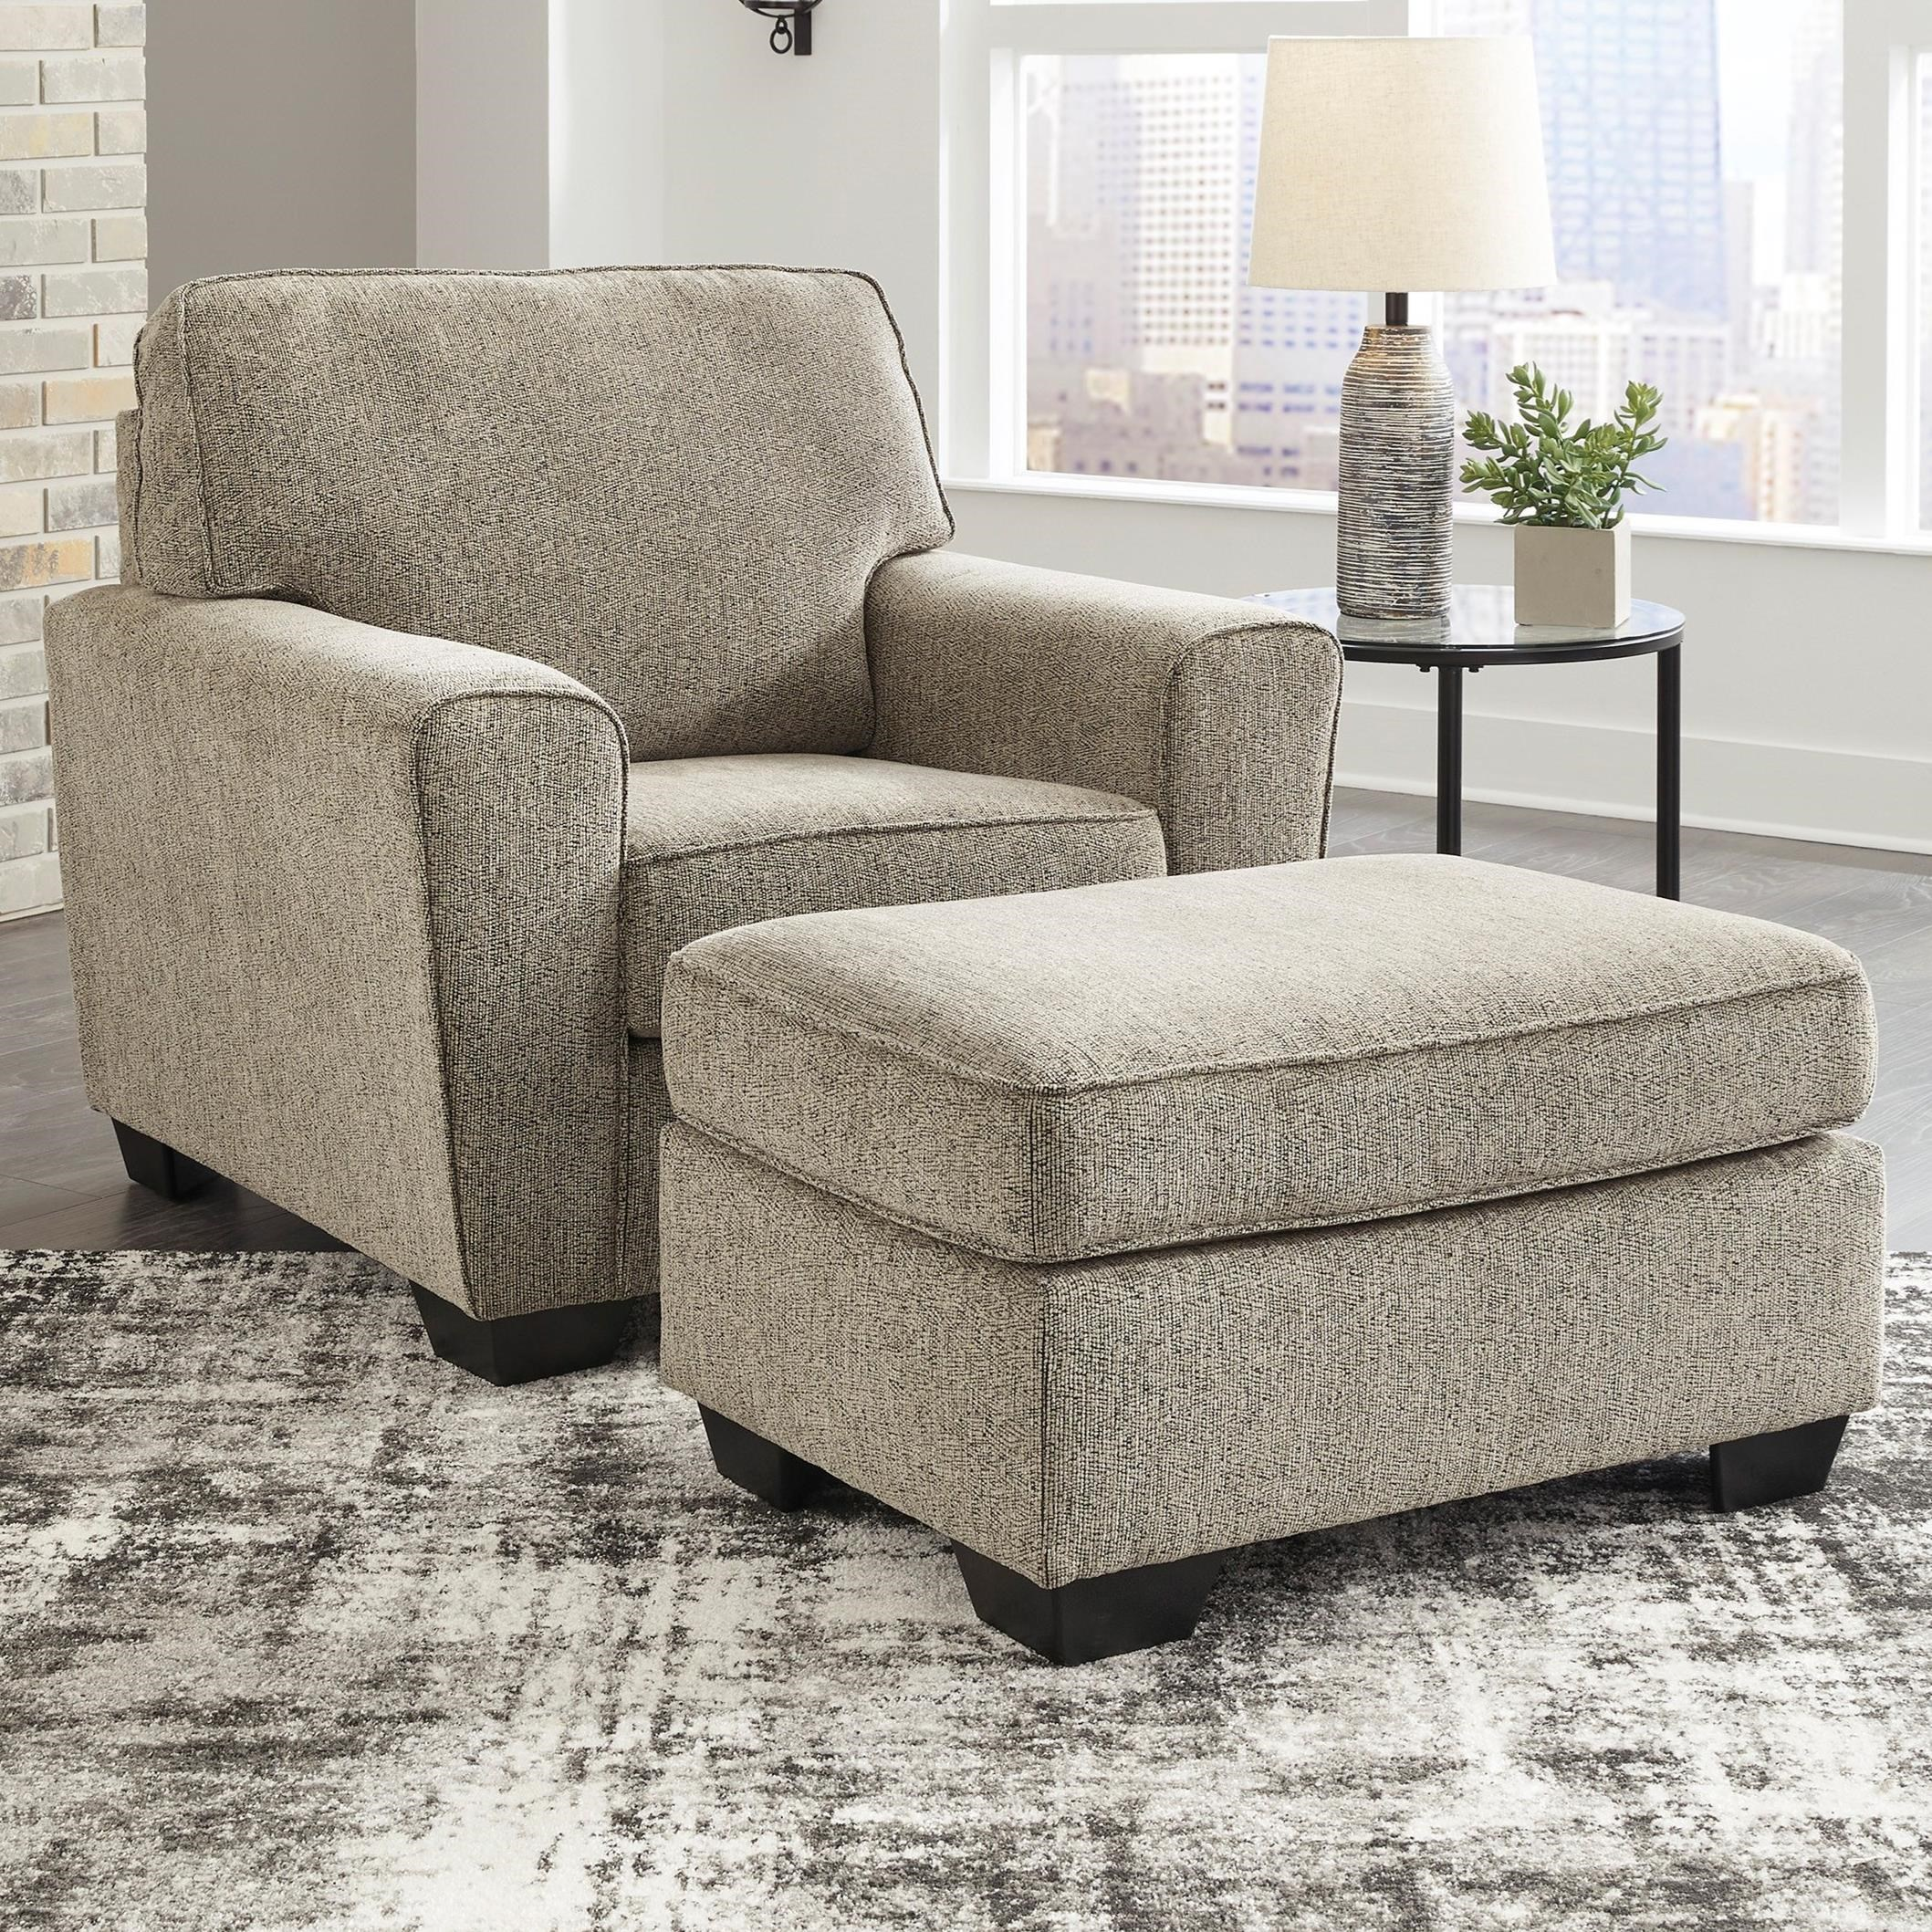 McCluer Chair & Ottoman by Benchcraft at Walker's Furniture